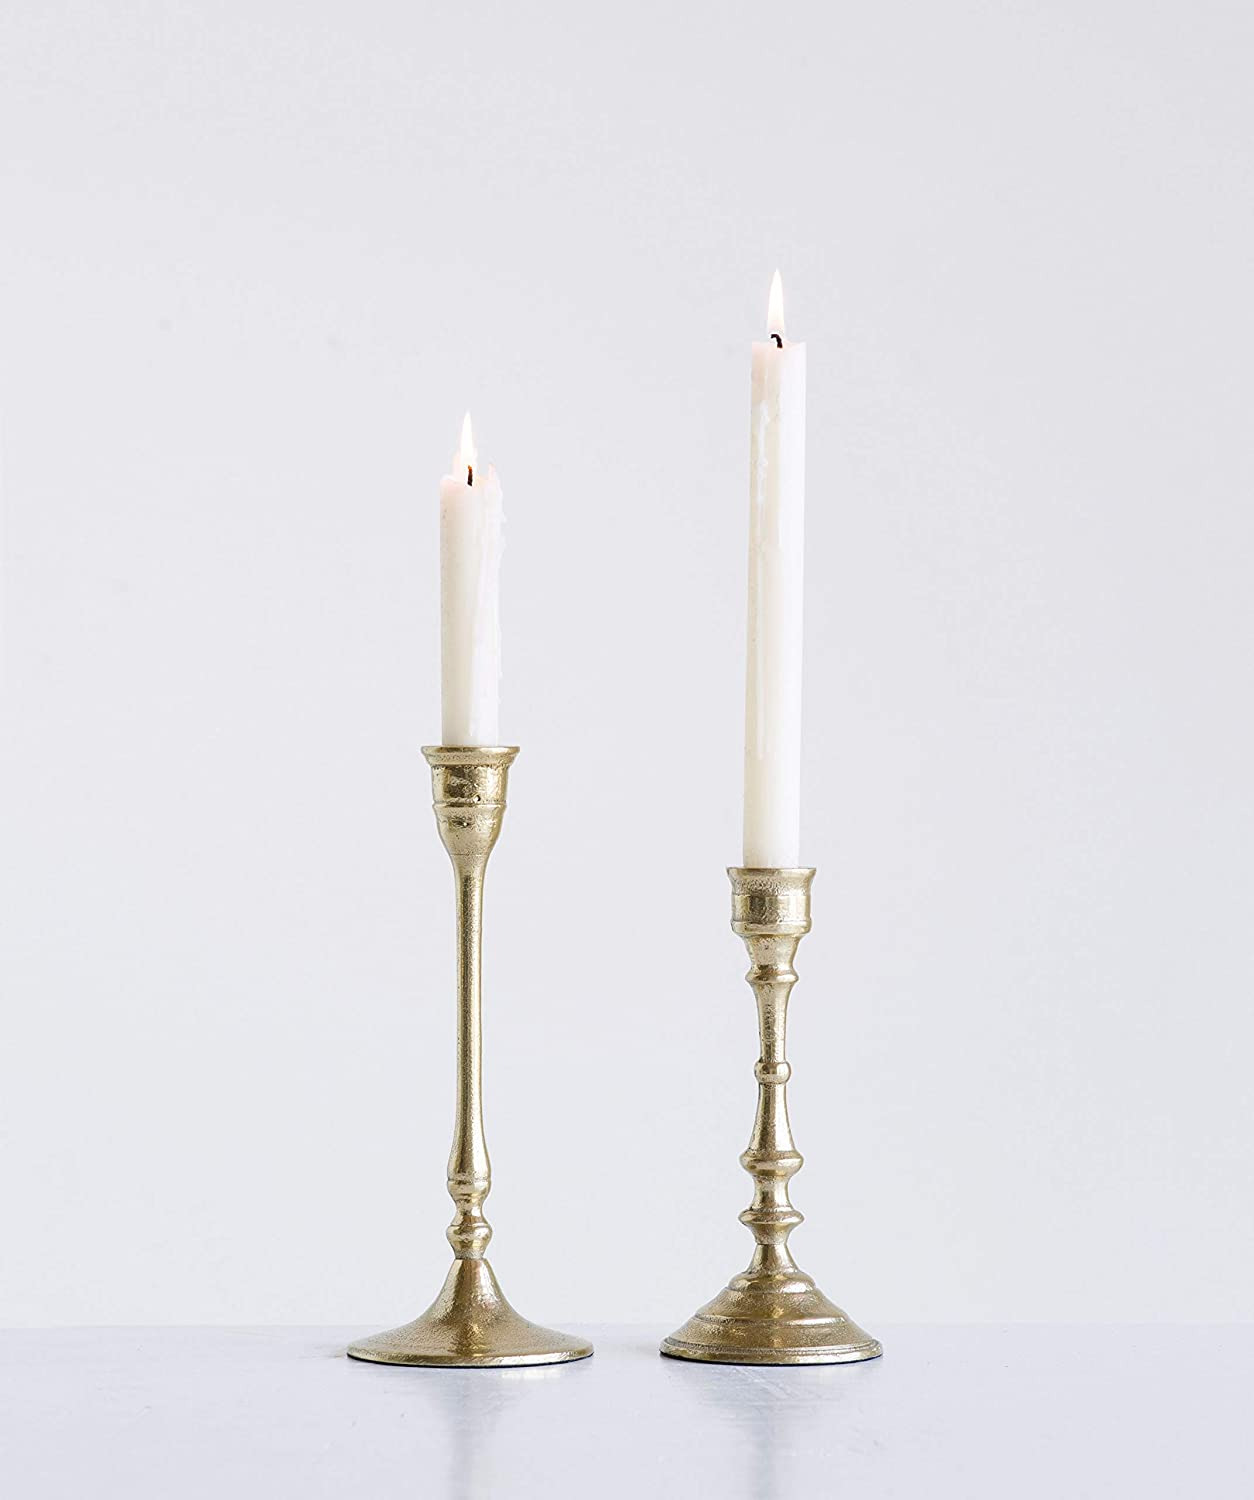 Aluminum taper candle holders with gold finish for a vintage style dining table or farmhouse style mantel.